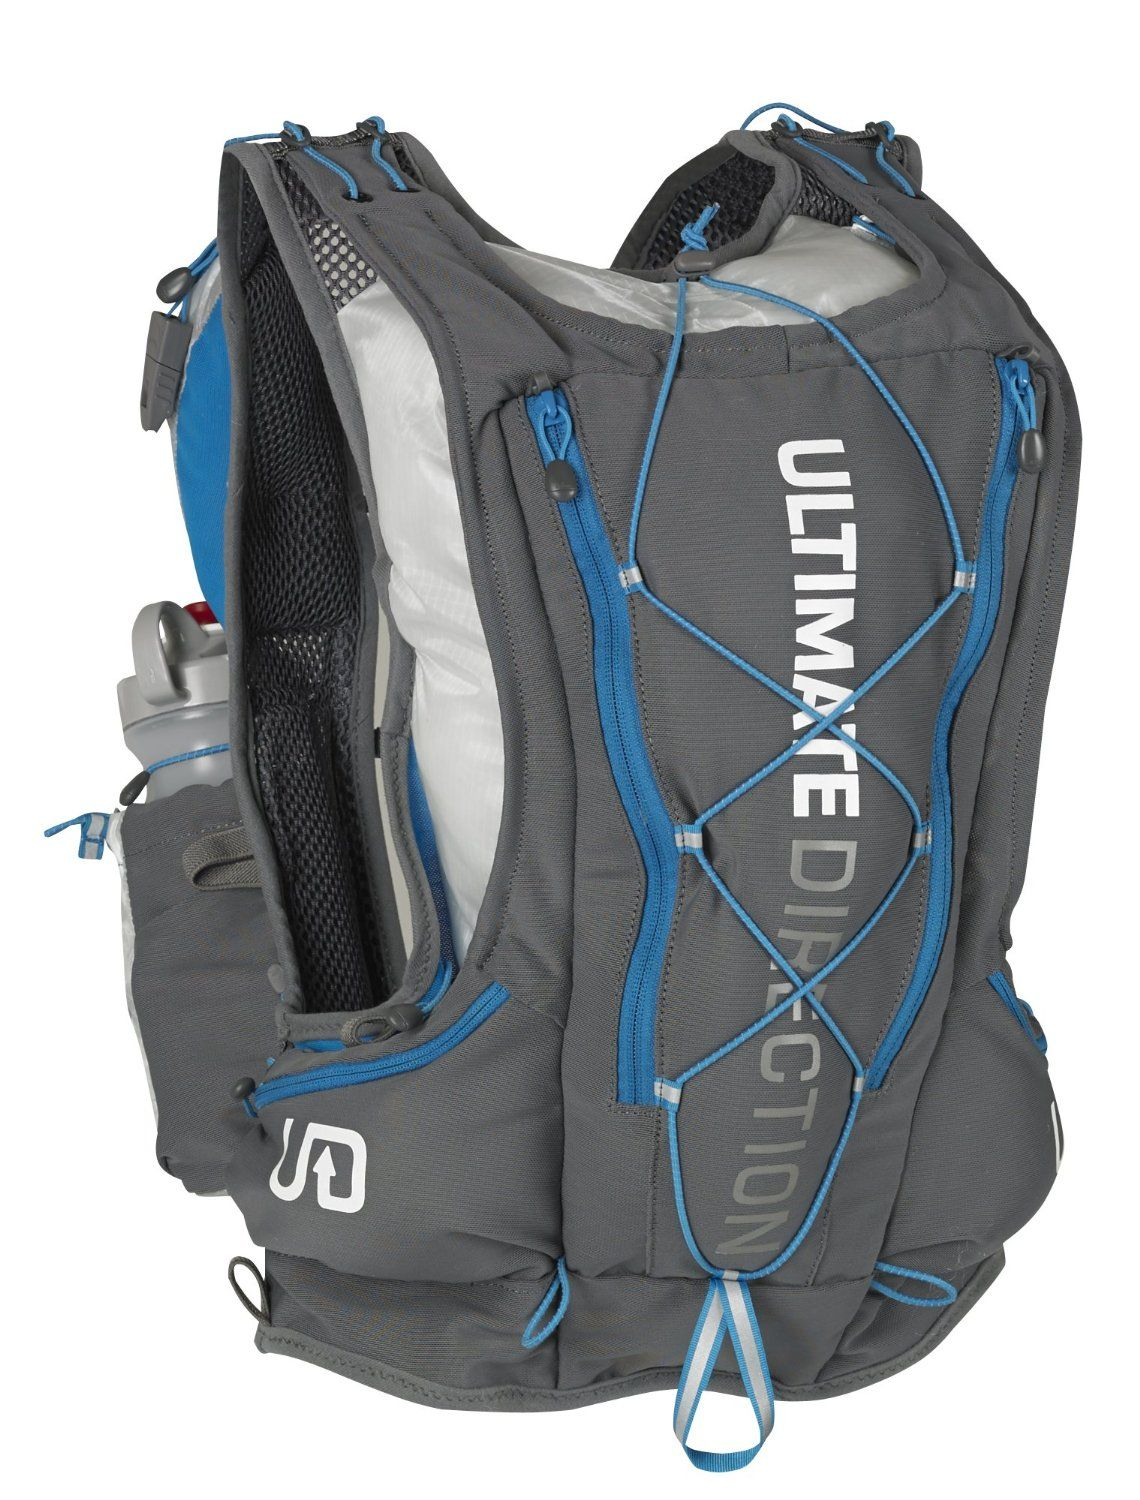 Amazon.com : Ultimate Direction PB 2.0 Adventure Vest : Sports & Outdoors